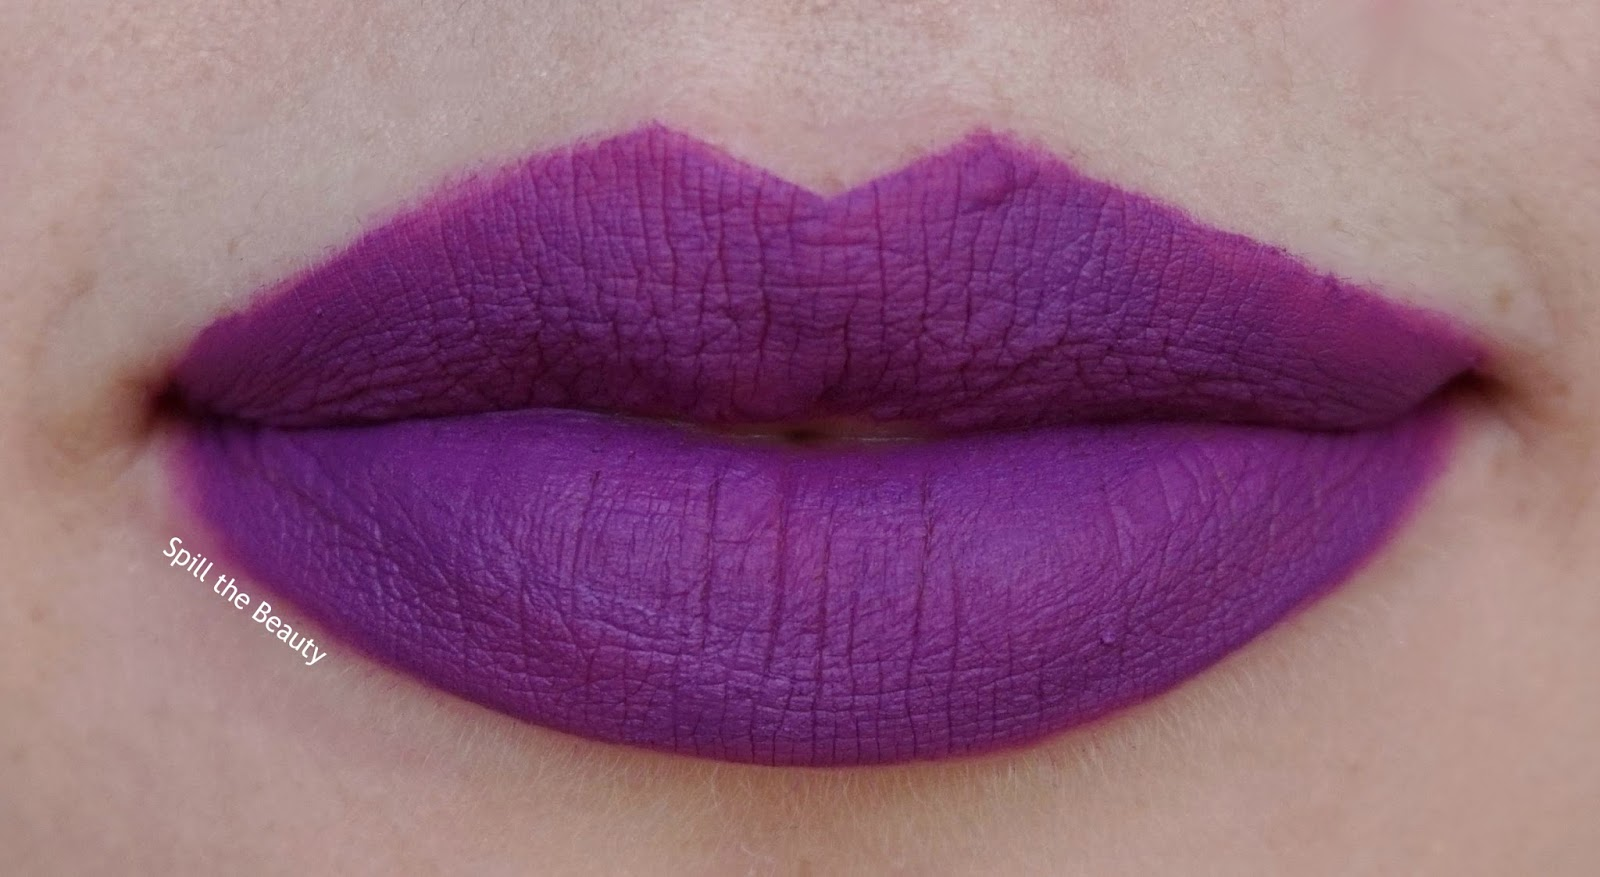 unicorn - lips too faced melted mattes review swatch